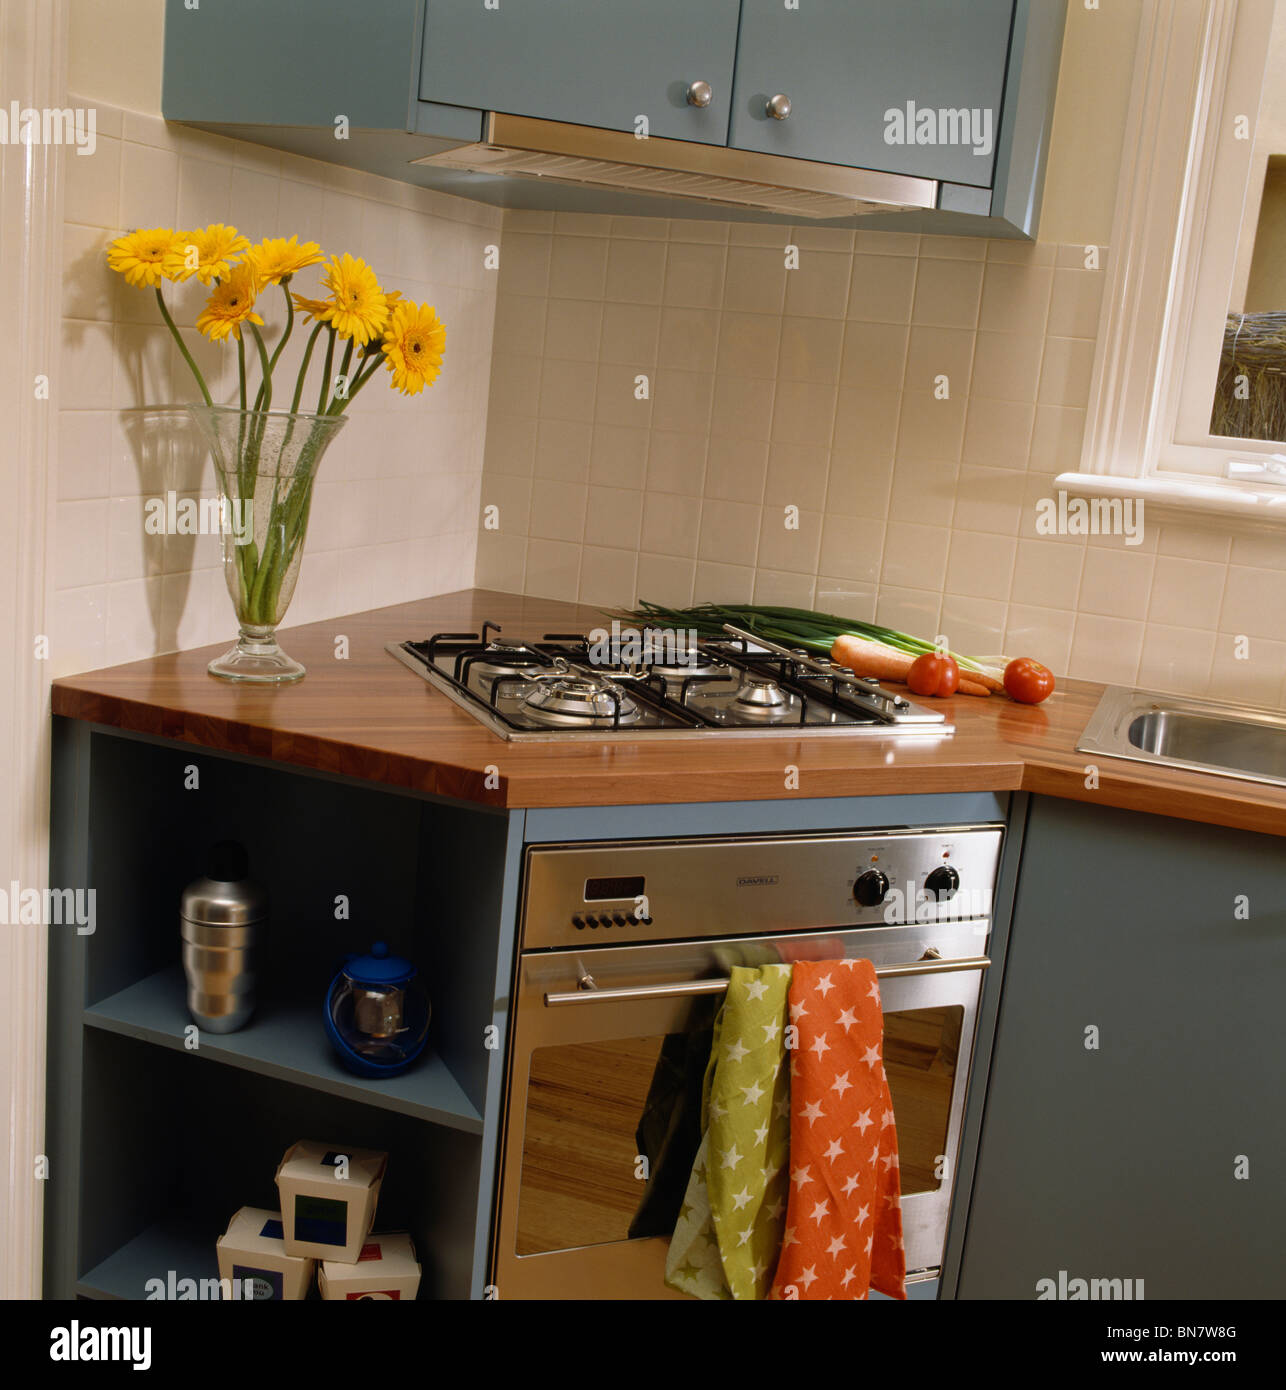 Modern Kitchen Oven: Hob And Oven In Fitted Corner Unit In Modern Kitchen Stock